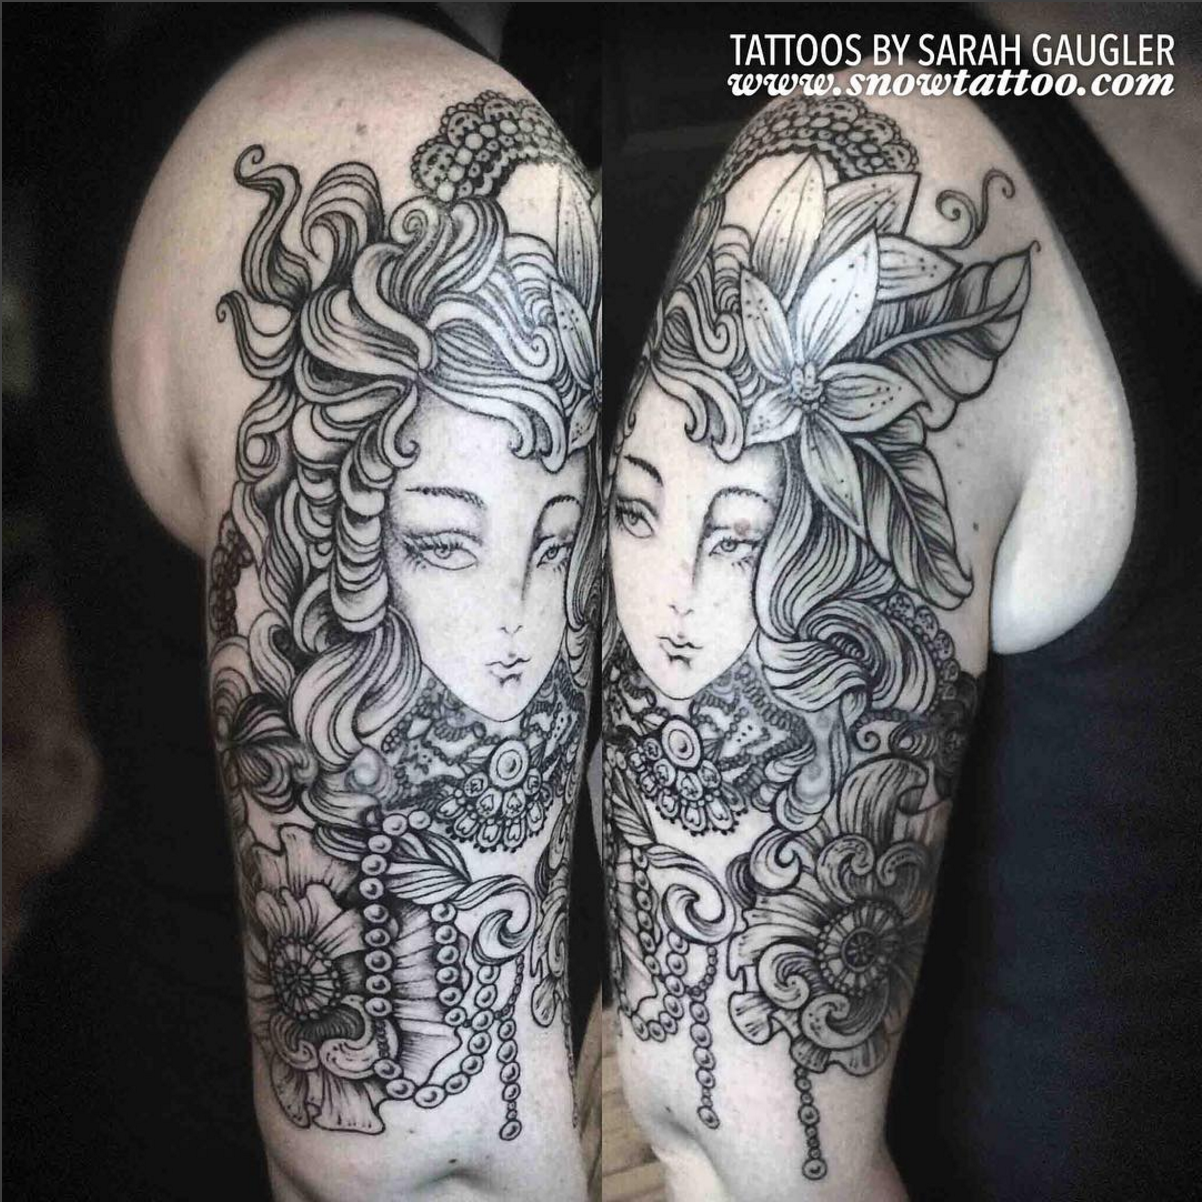 Cusotm+Victorian+Girl+Tattoo+Line+Art+Original+Flash+Tattoo+by+Sarah+Gaugler+at+Snow+Tattoo+New+York+NYC+NewYorkTimes.jpg